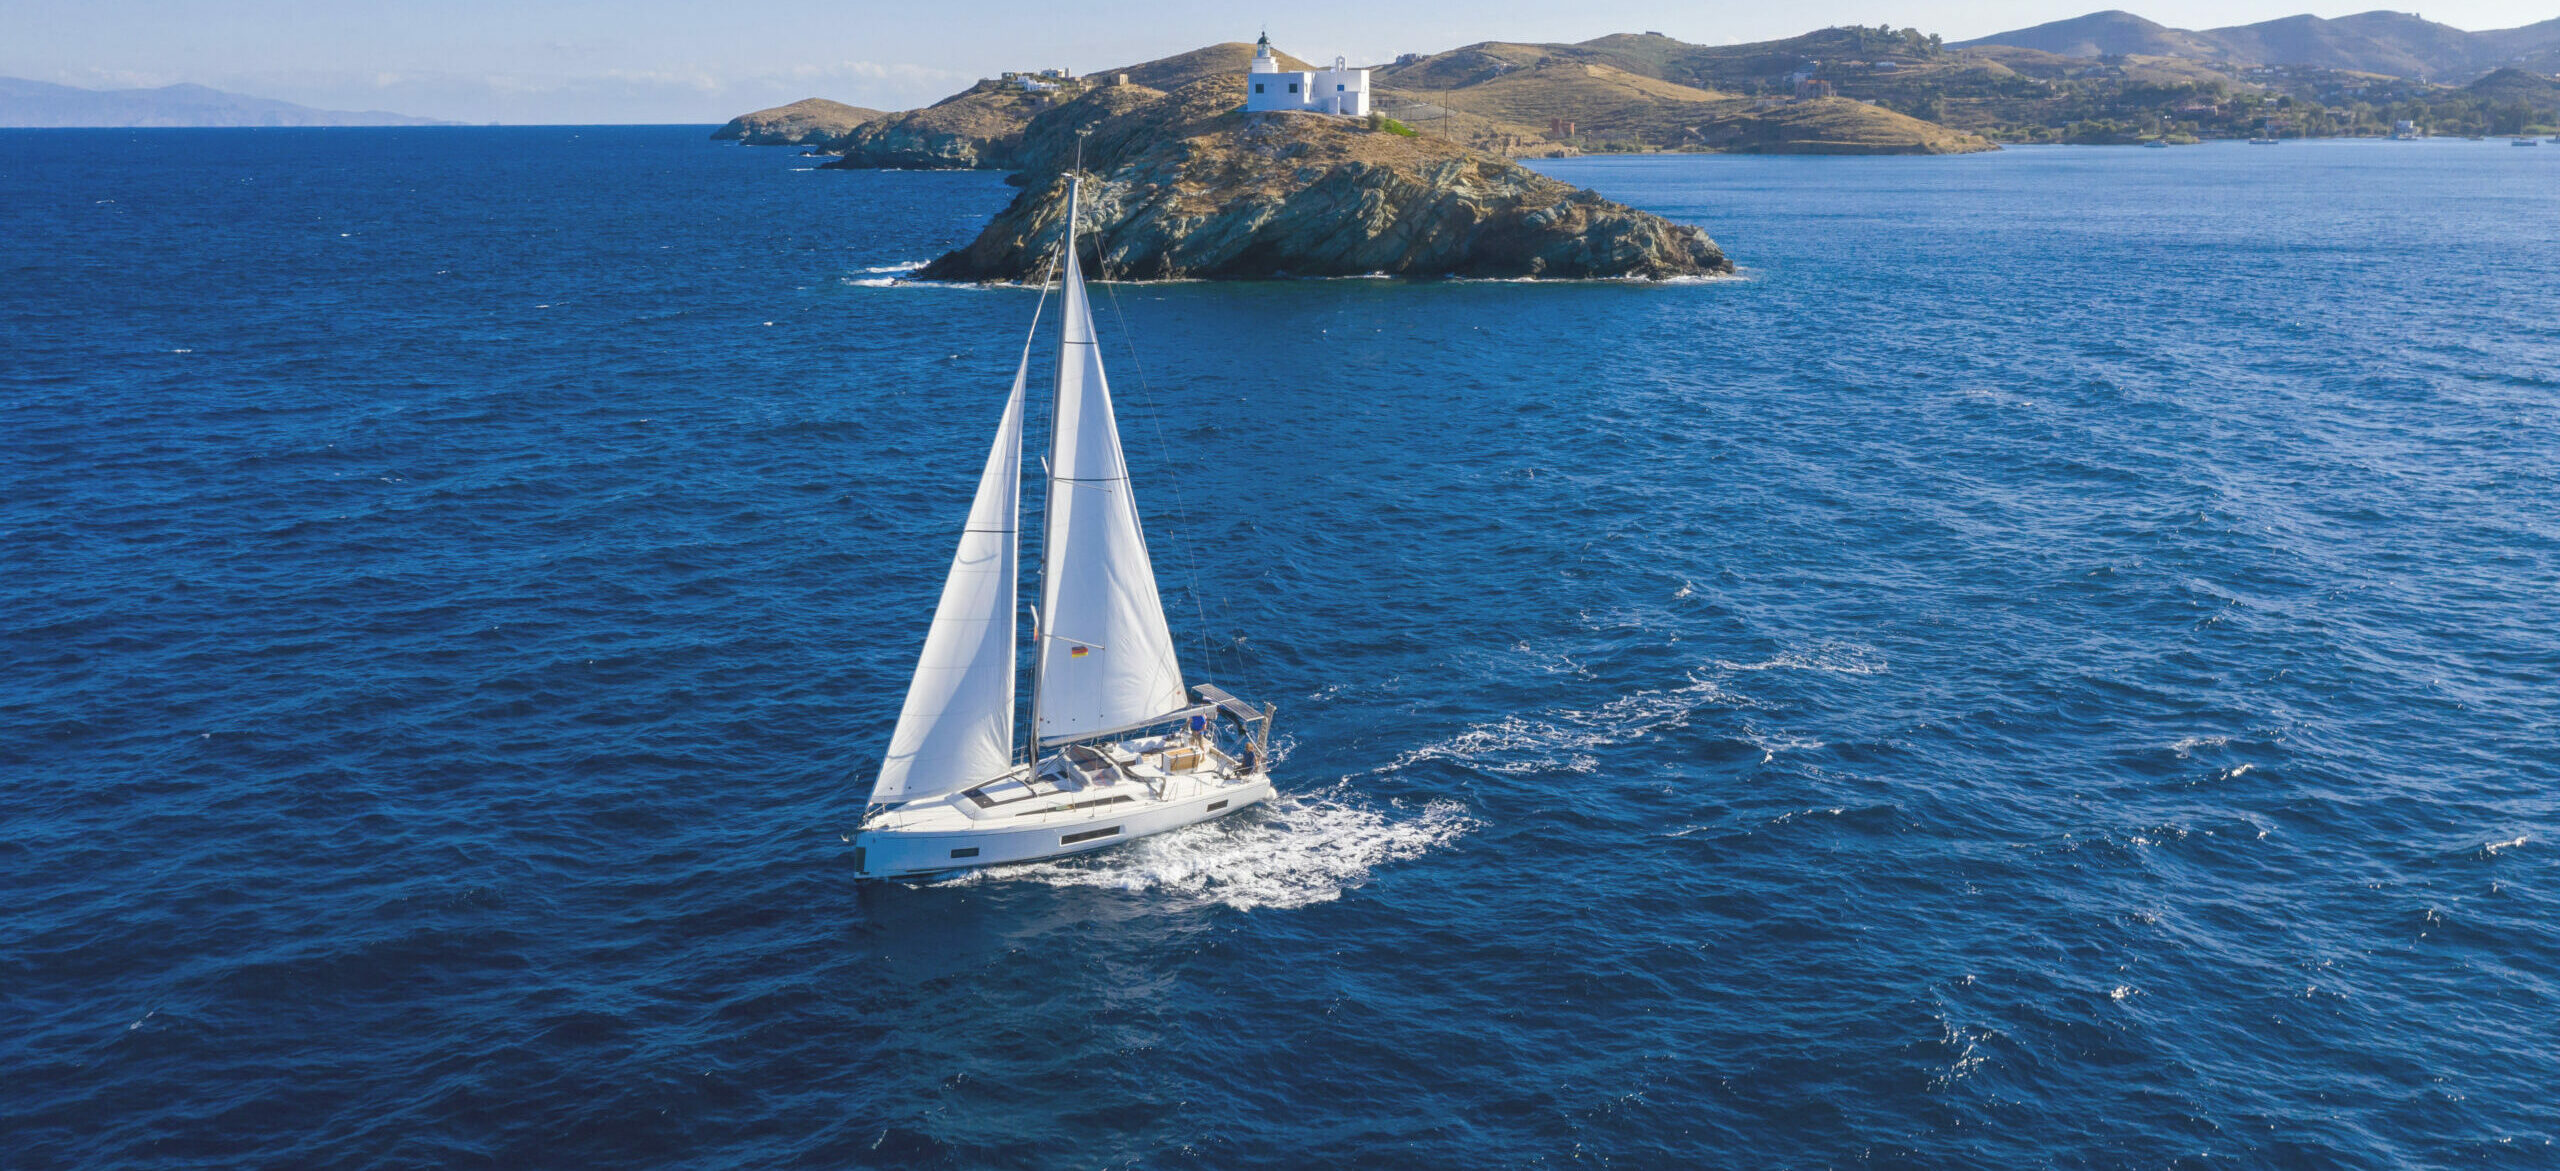 Three unforgettable days on a boat in the Aegean Sea